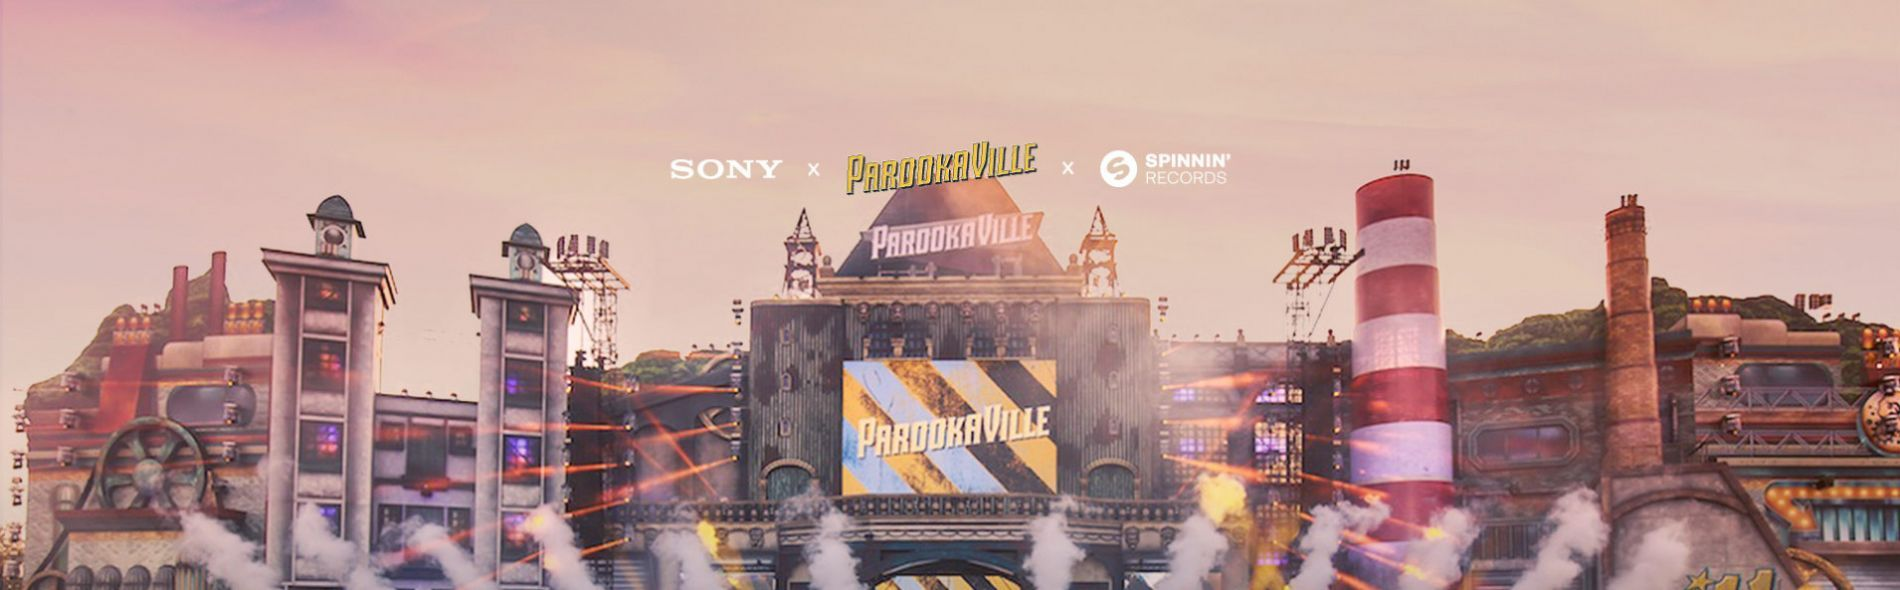 SONY AND PAROOKAVILLE